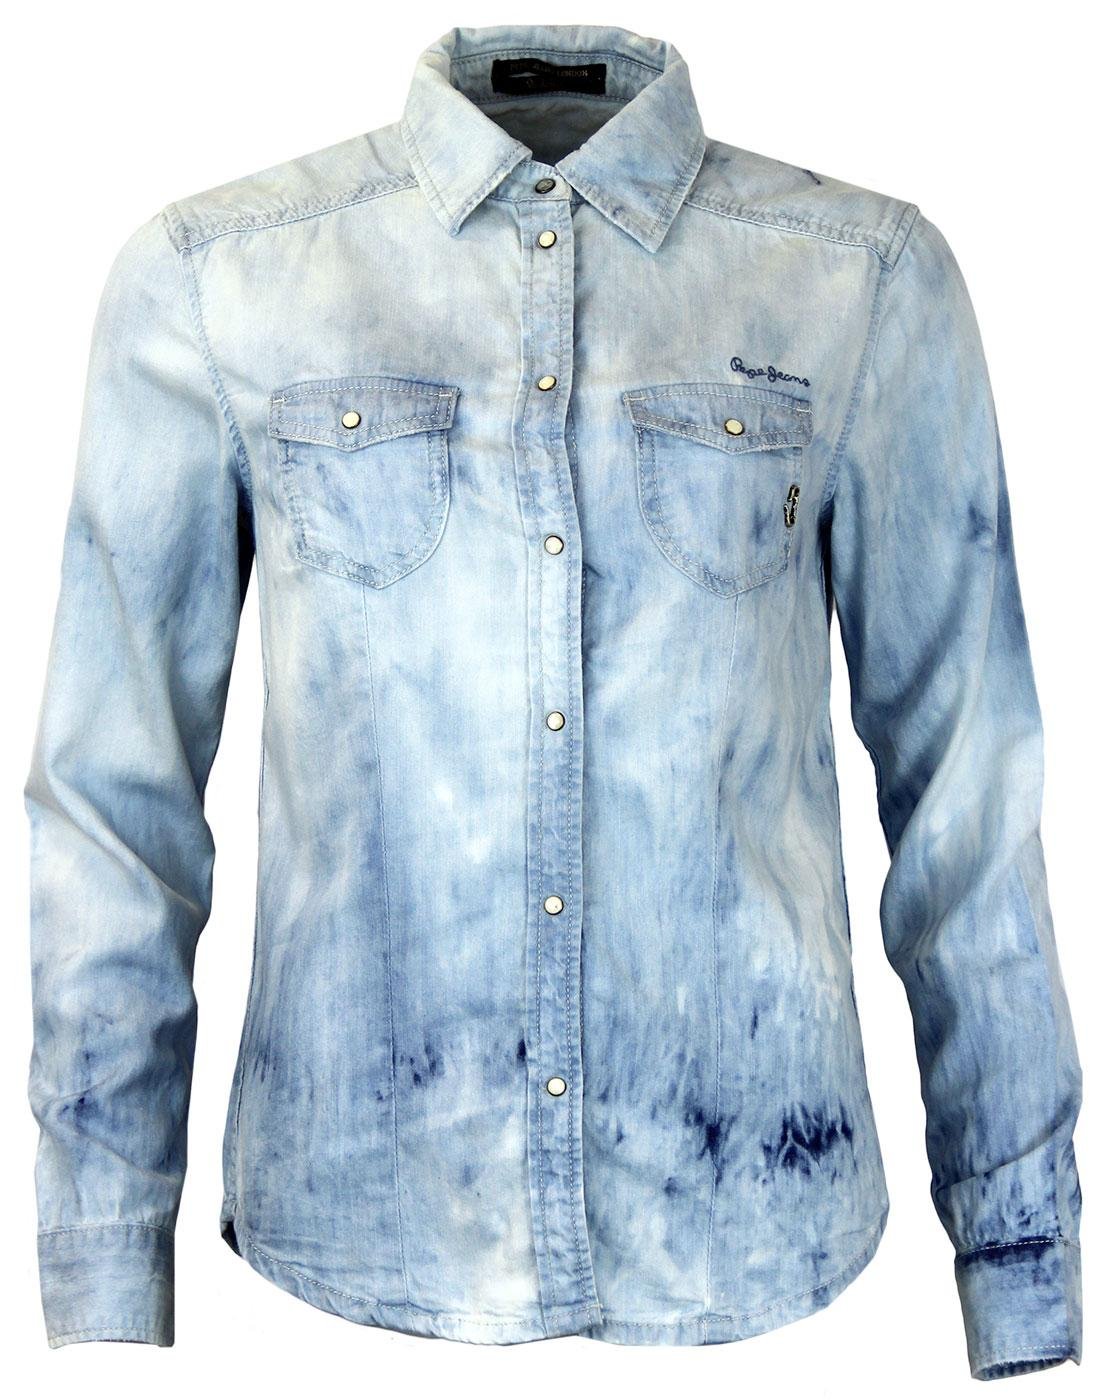 Crumpet PEPE JEANS Retro Light Wash Denim Shirt